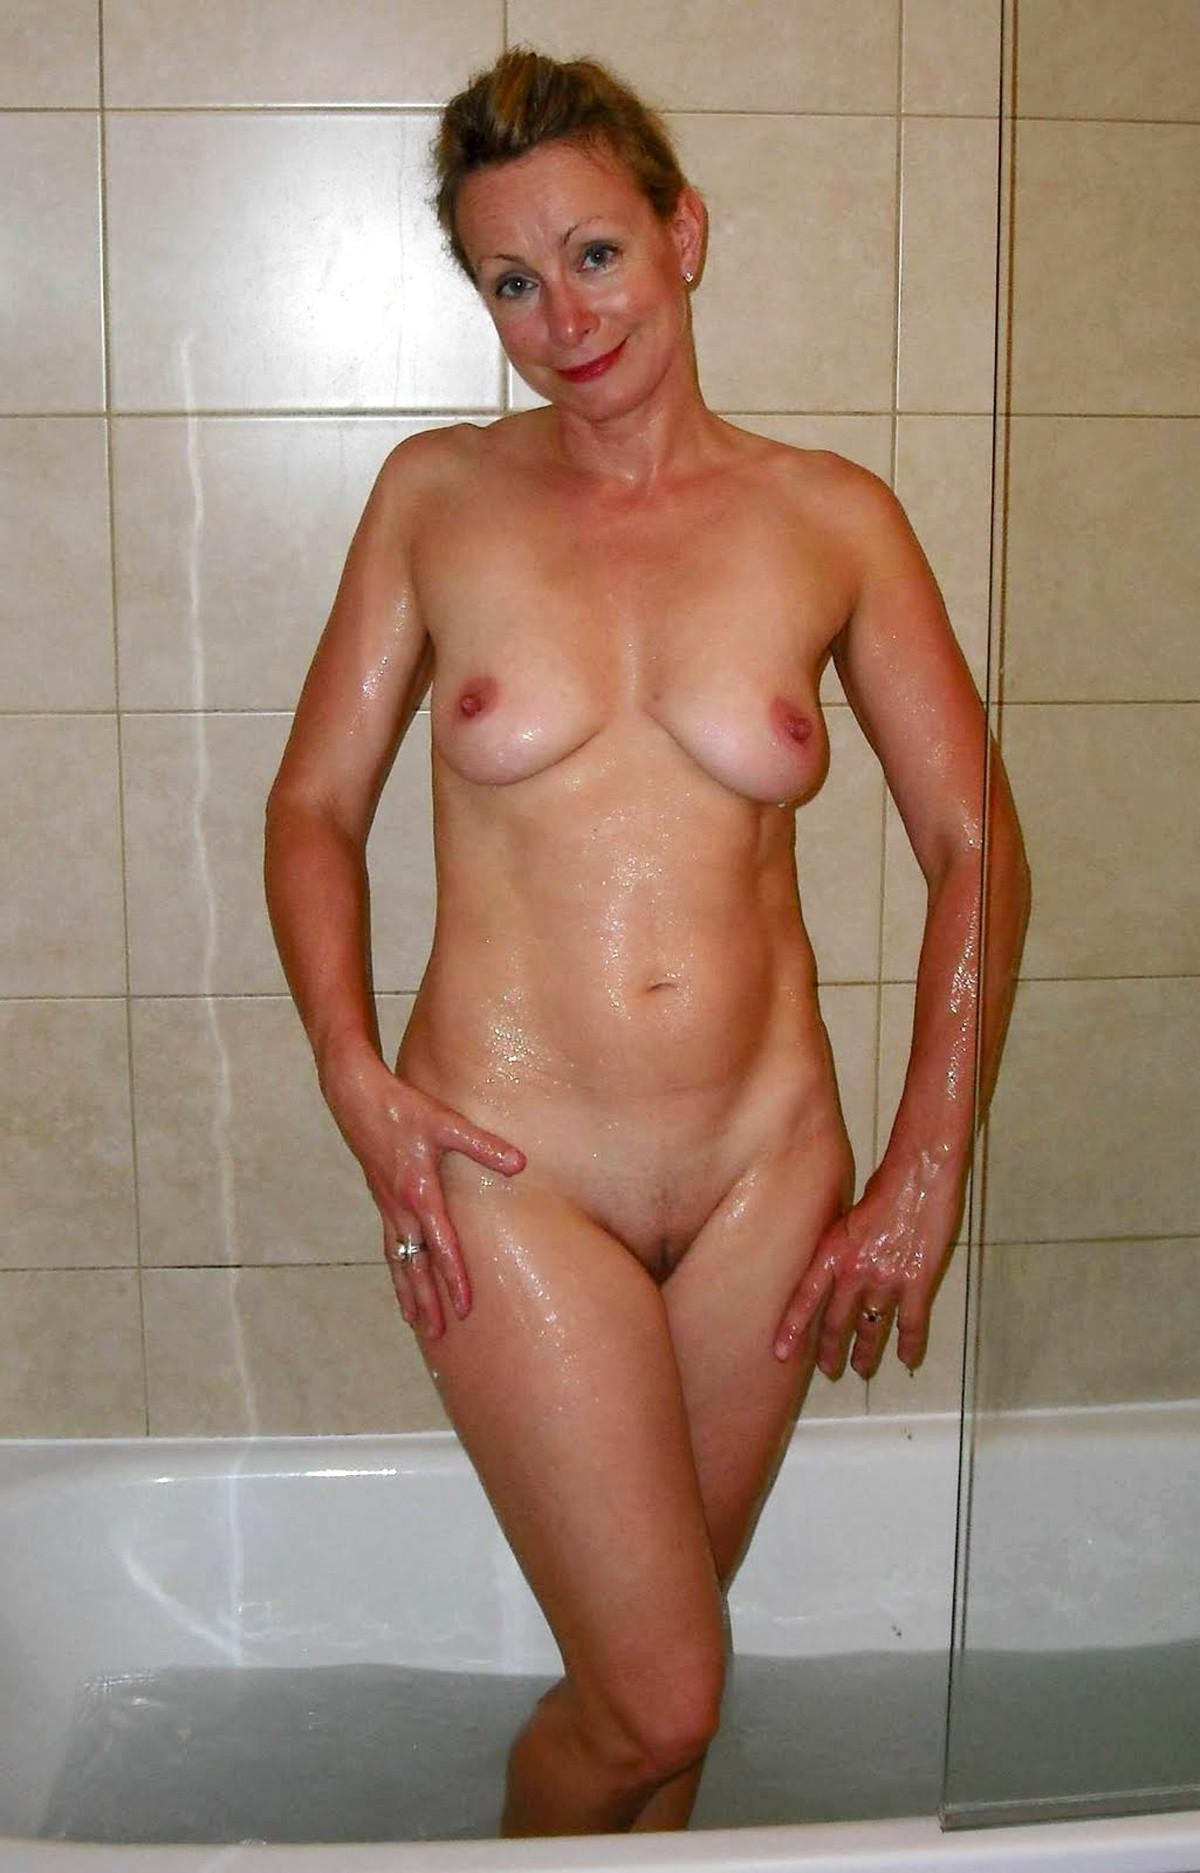 chubby ex wife with tattoos takes shower porn tube video